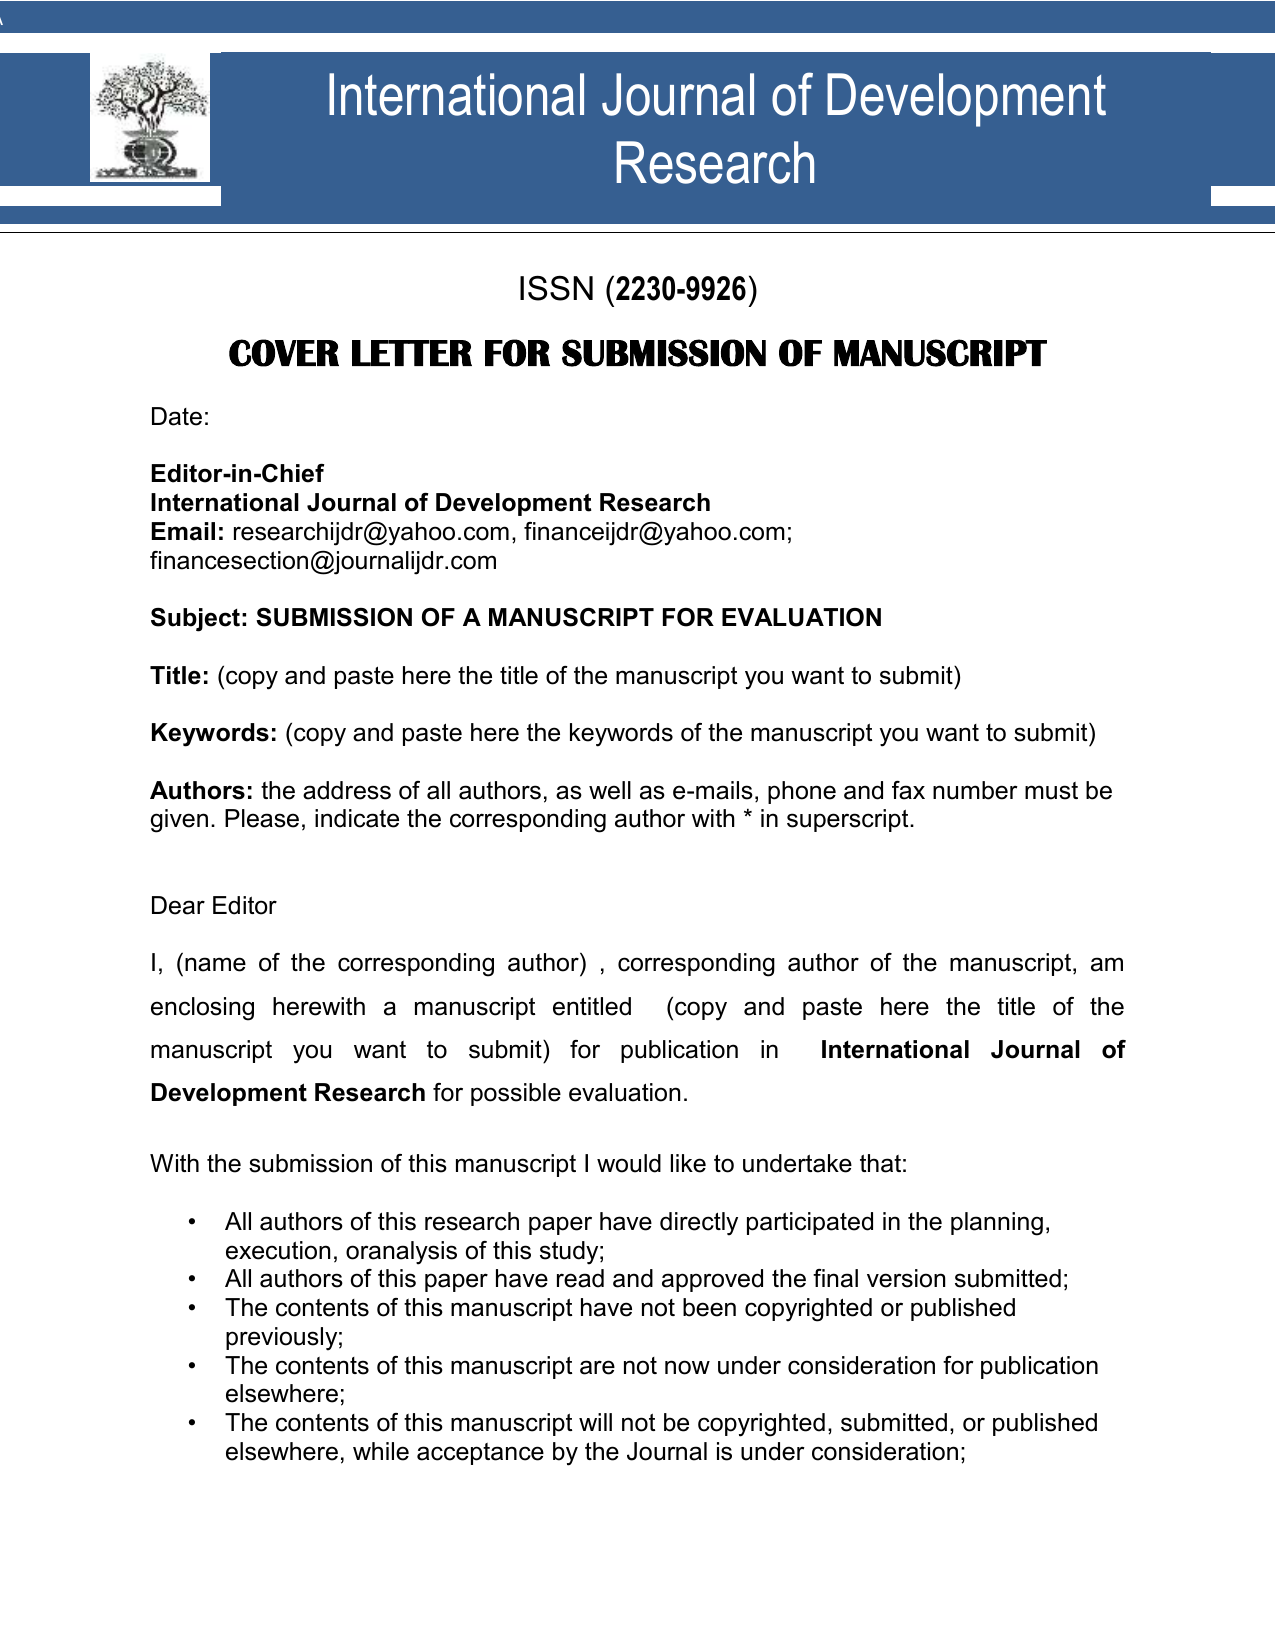 Cover letter - International Journal Of Development Research